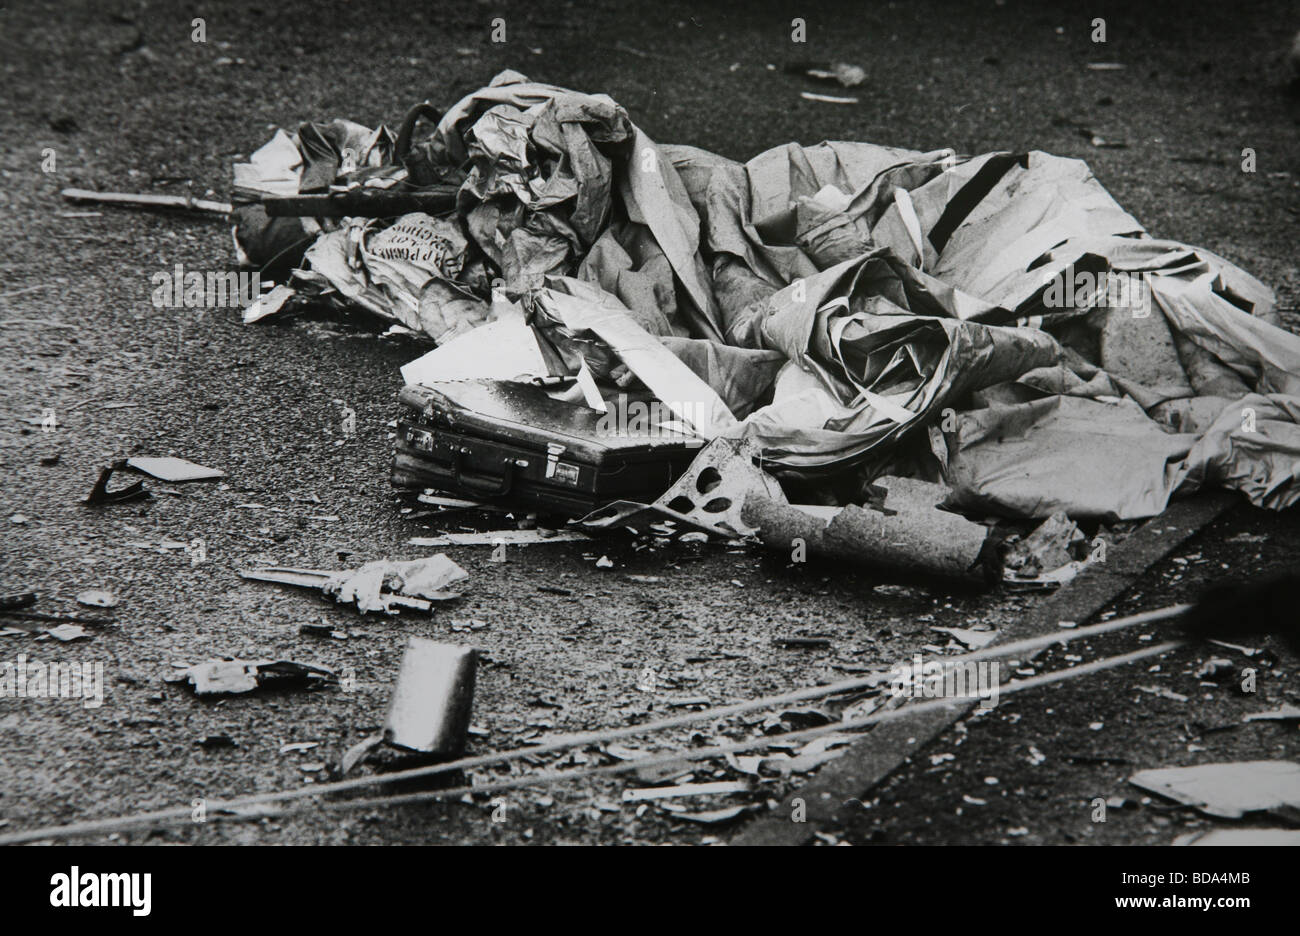 A briefcase and other debris lay on the ground in Lockerbie after Pan Am flight 103 crashed in the Scottish town - Stock Image